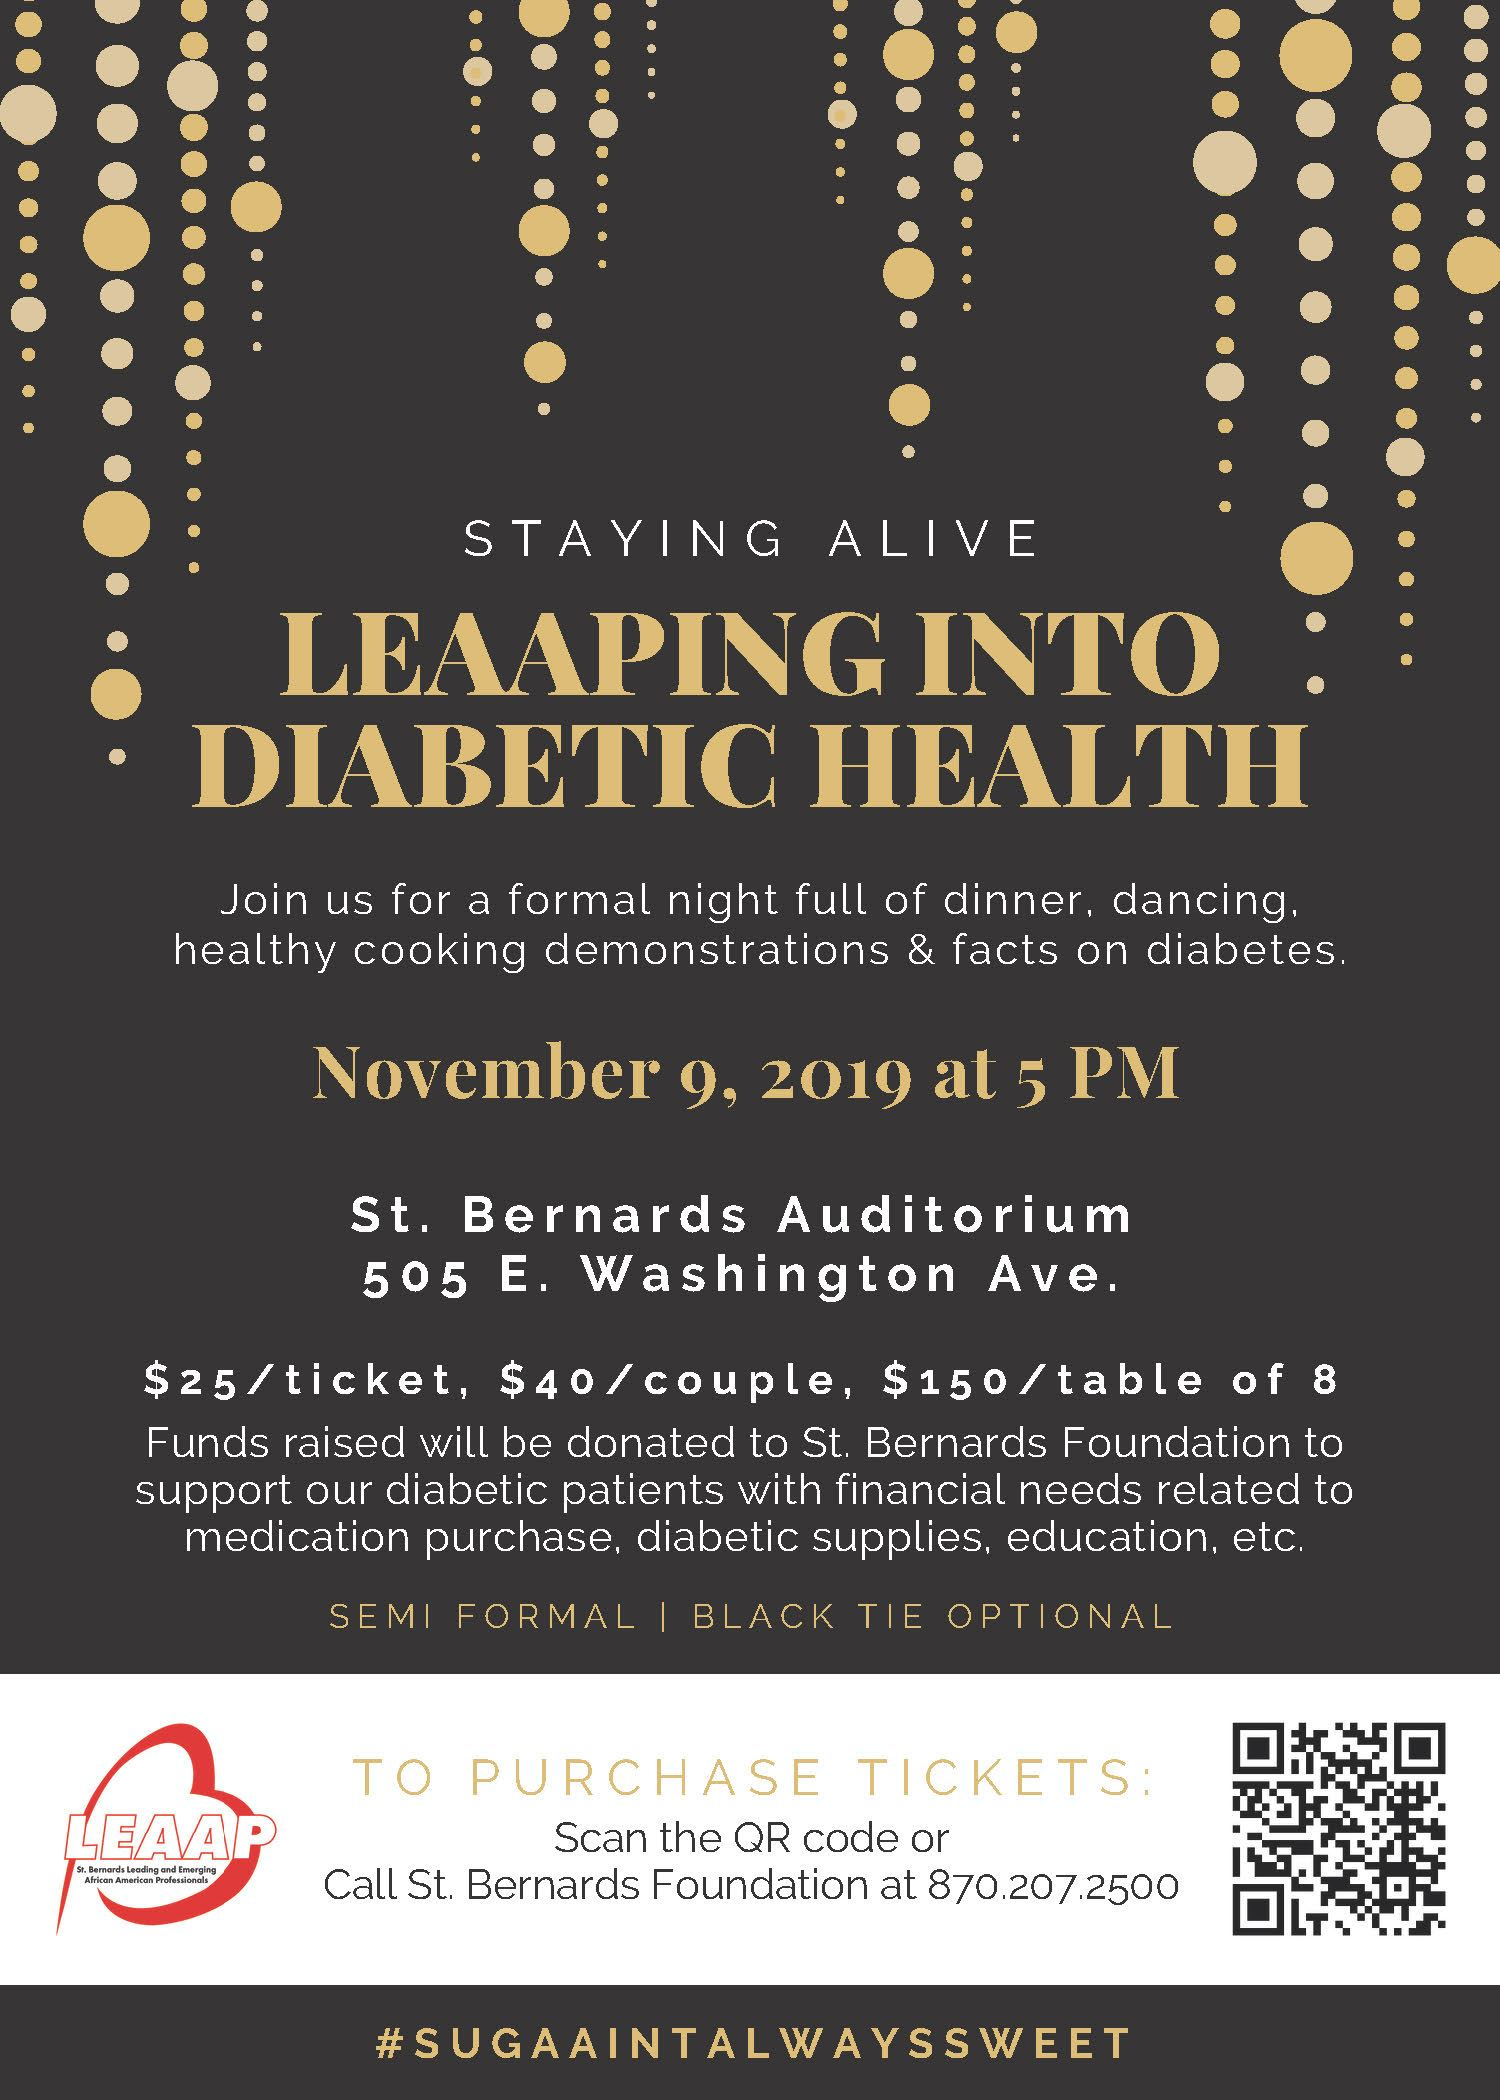 LEAAPing into Diabetic Health Final Flyer